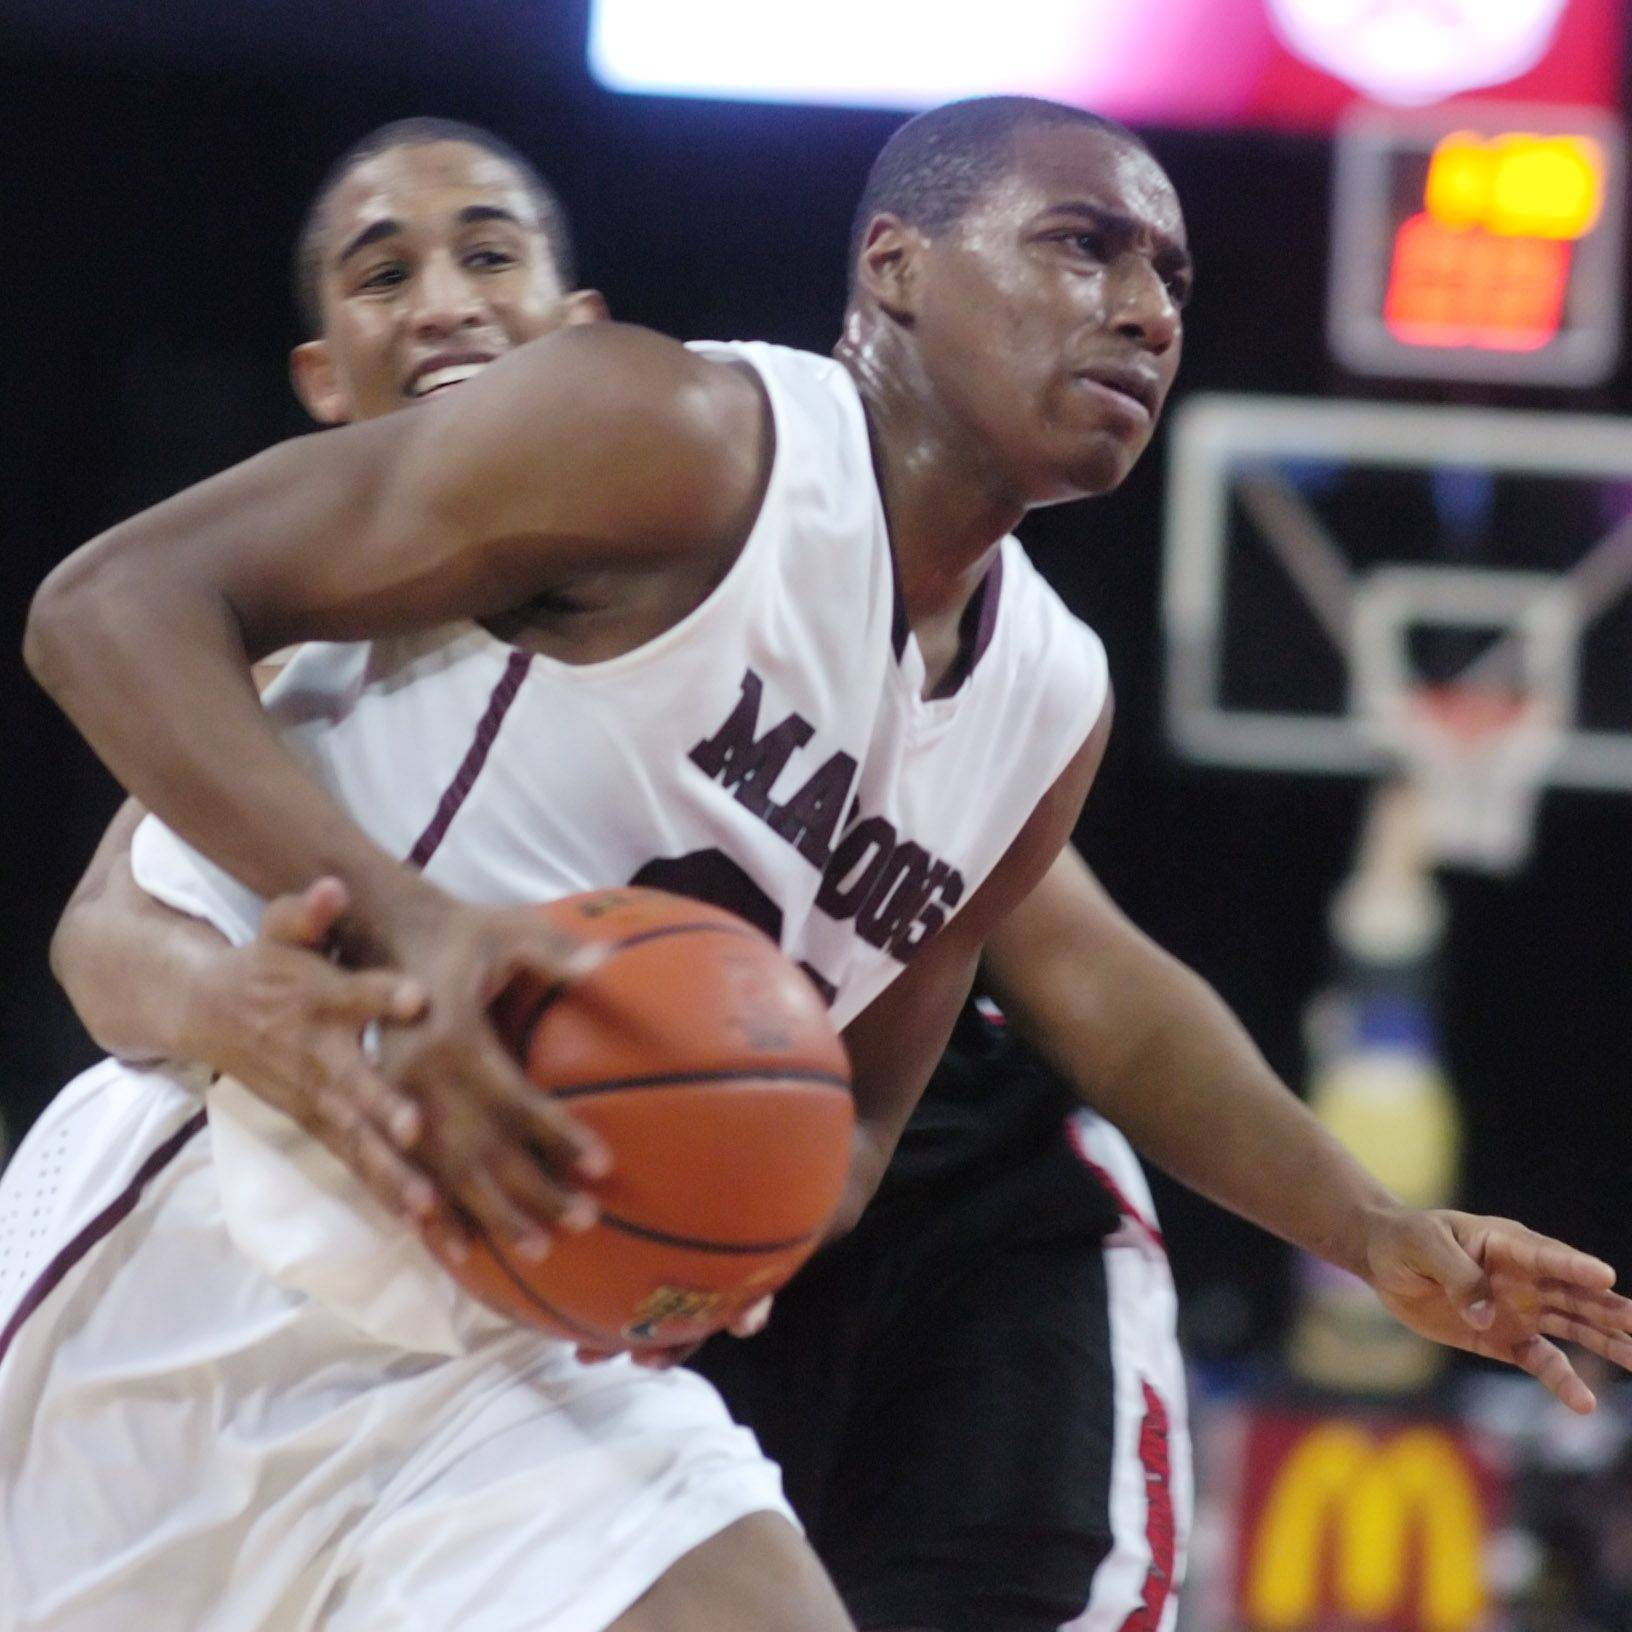 Elgin senior Kory Brown, who tied his career high with 30 points, drives to the basket during the Maroons' 58-44 win over Huntley at Saturday's High School Hoops Showdown game at the Sears Centre in Hoffman Estates.